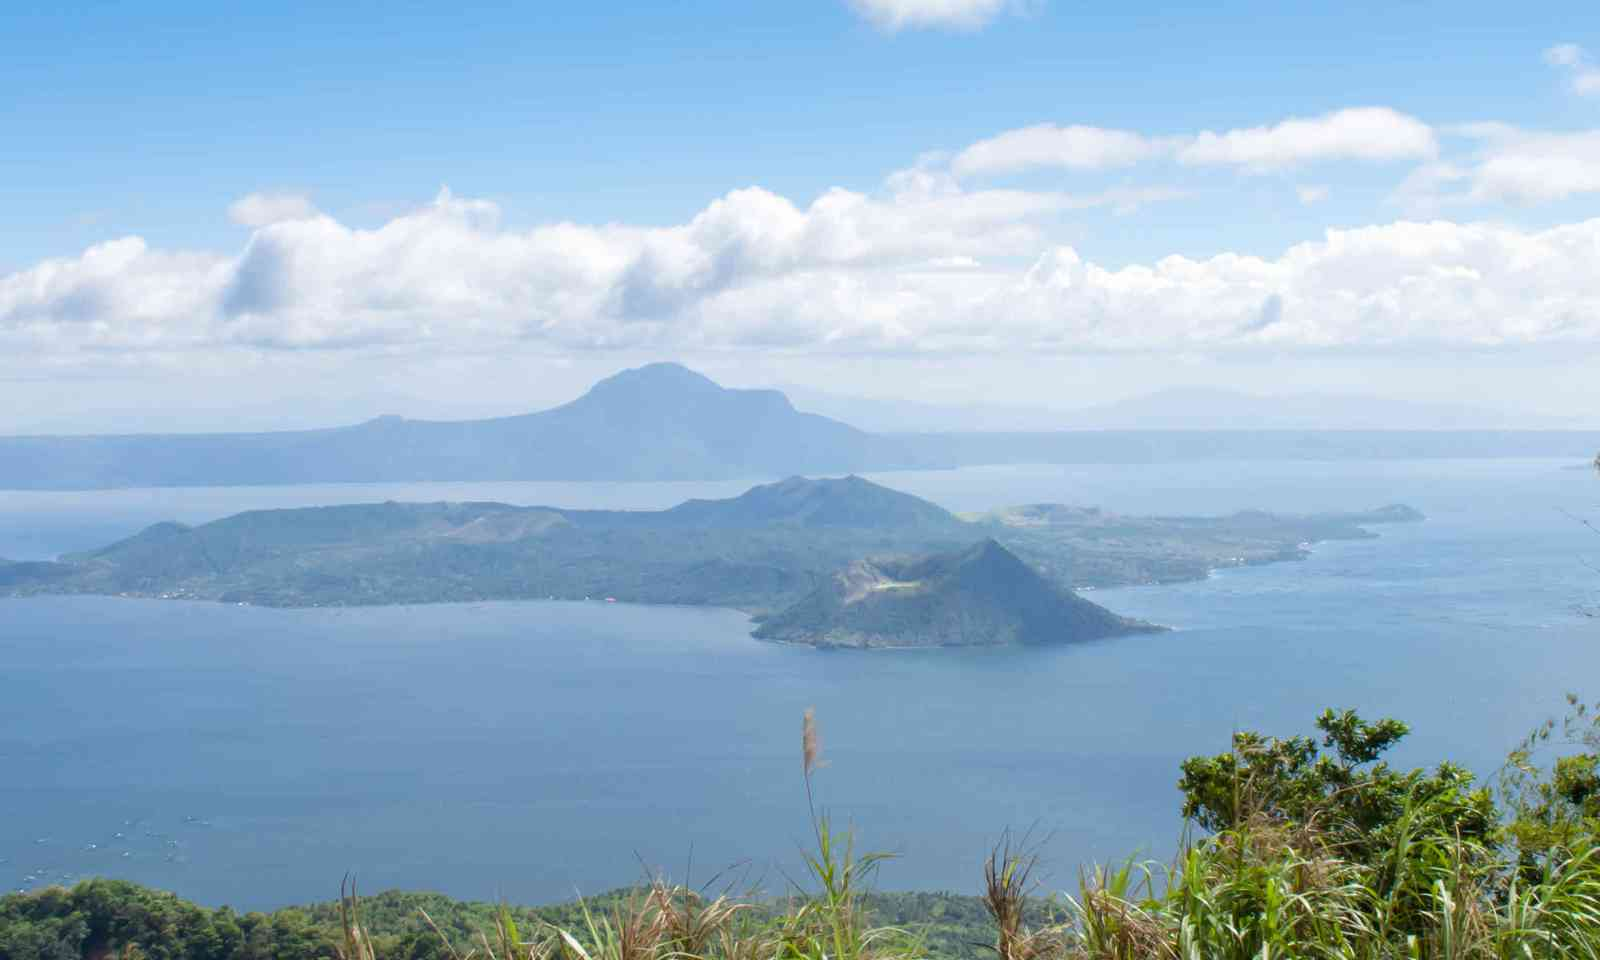 The volcanic crater of Binintiang Malaki (Shutterstock)